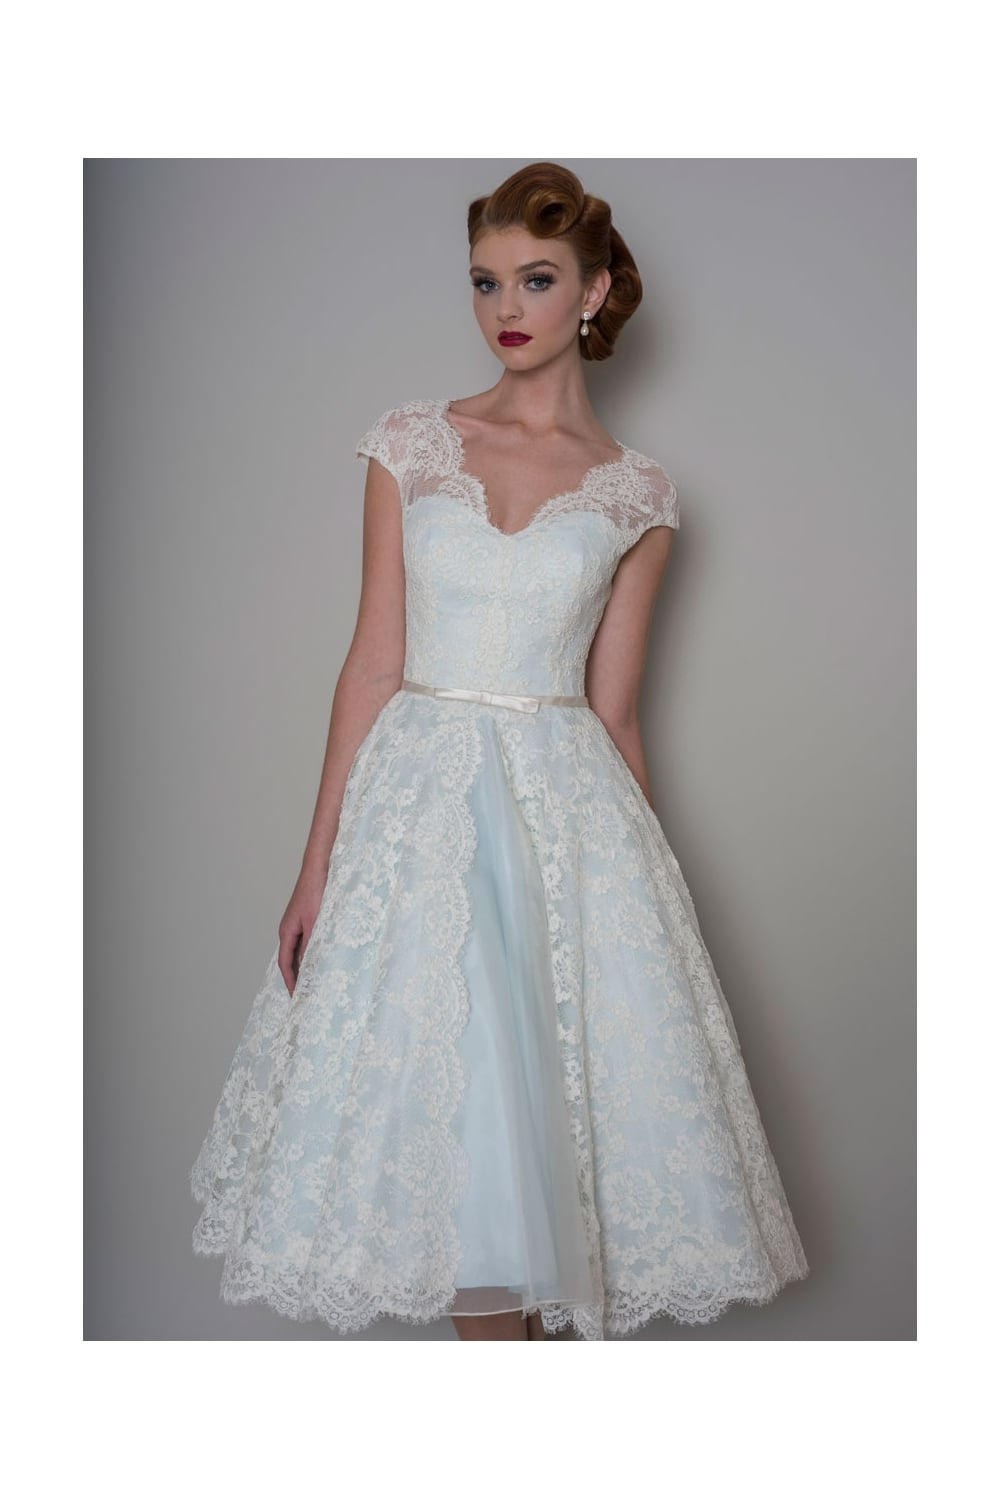 Lb142 bella tea length lace blue wedding dress for Short blue wedding dresses